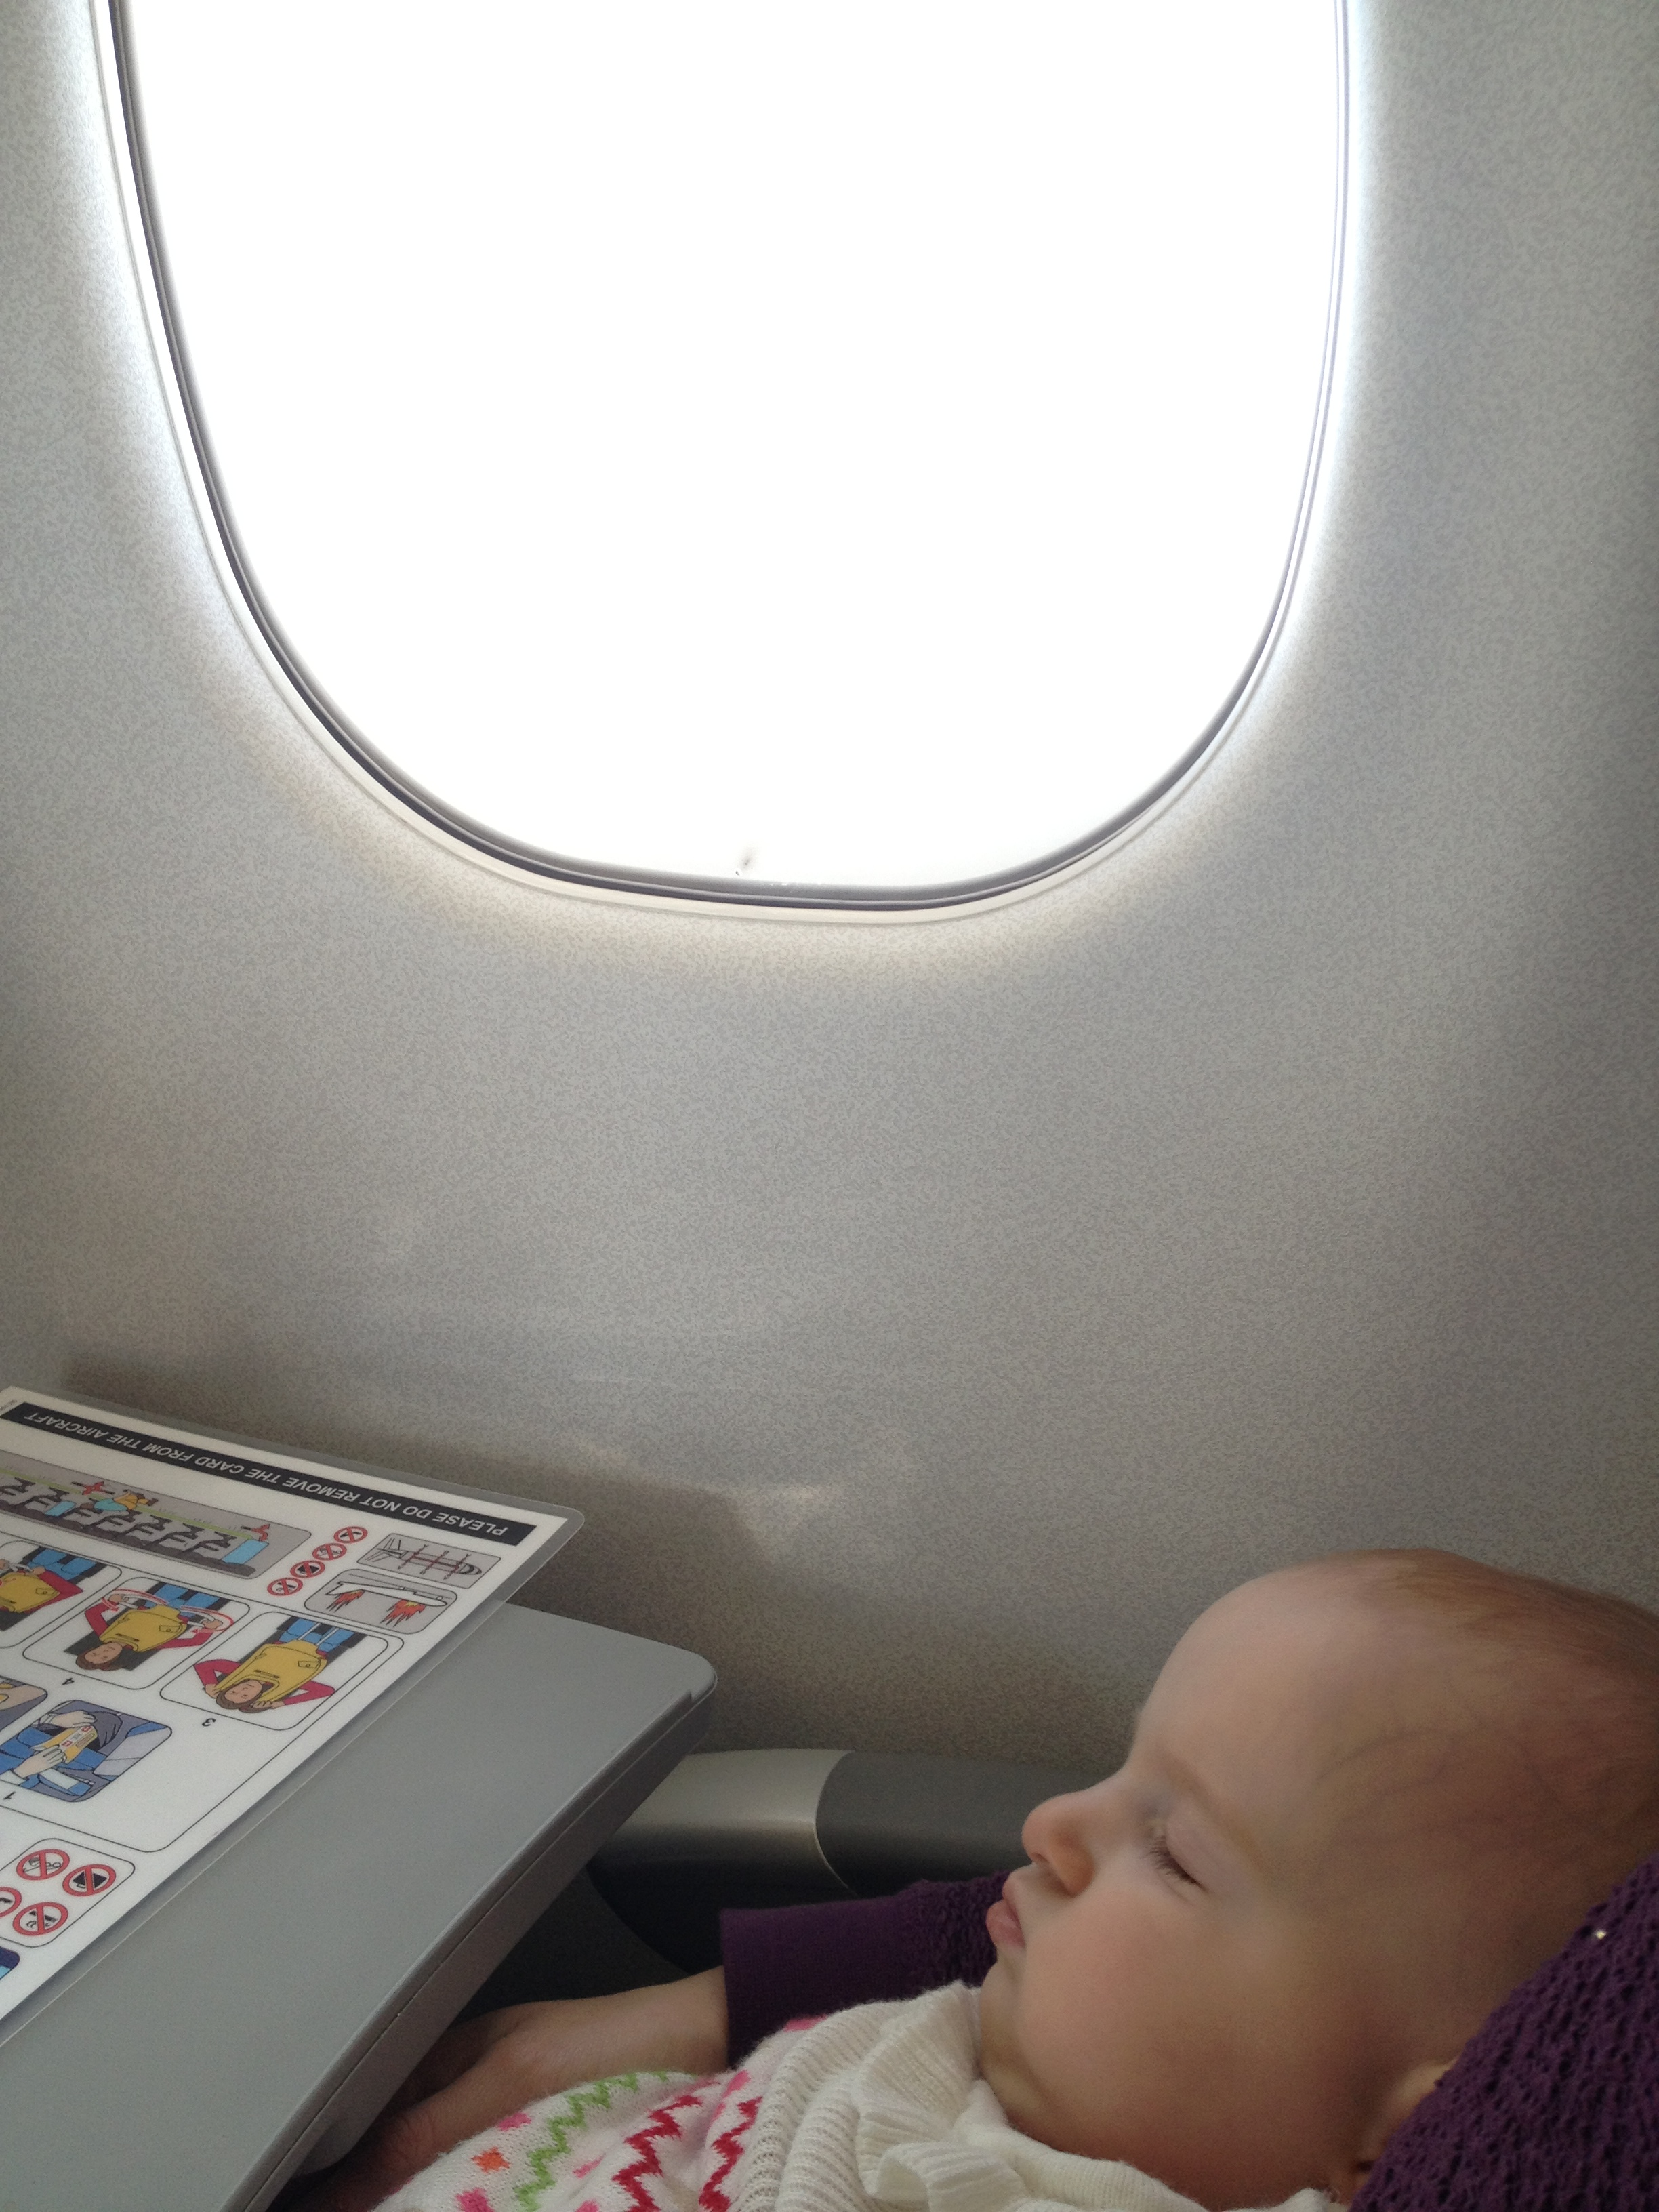 Your ultimate guide of tips when flying with young children and babies